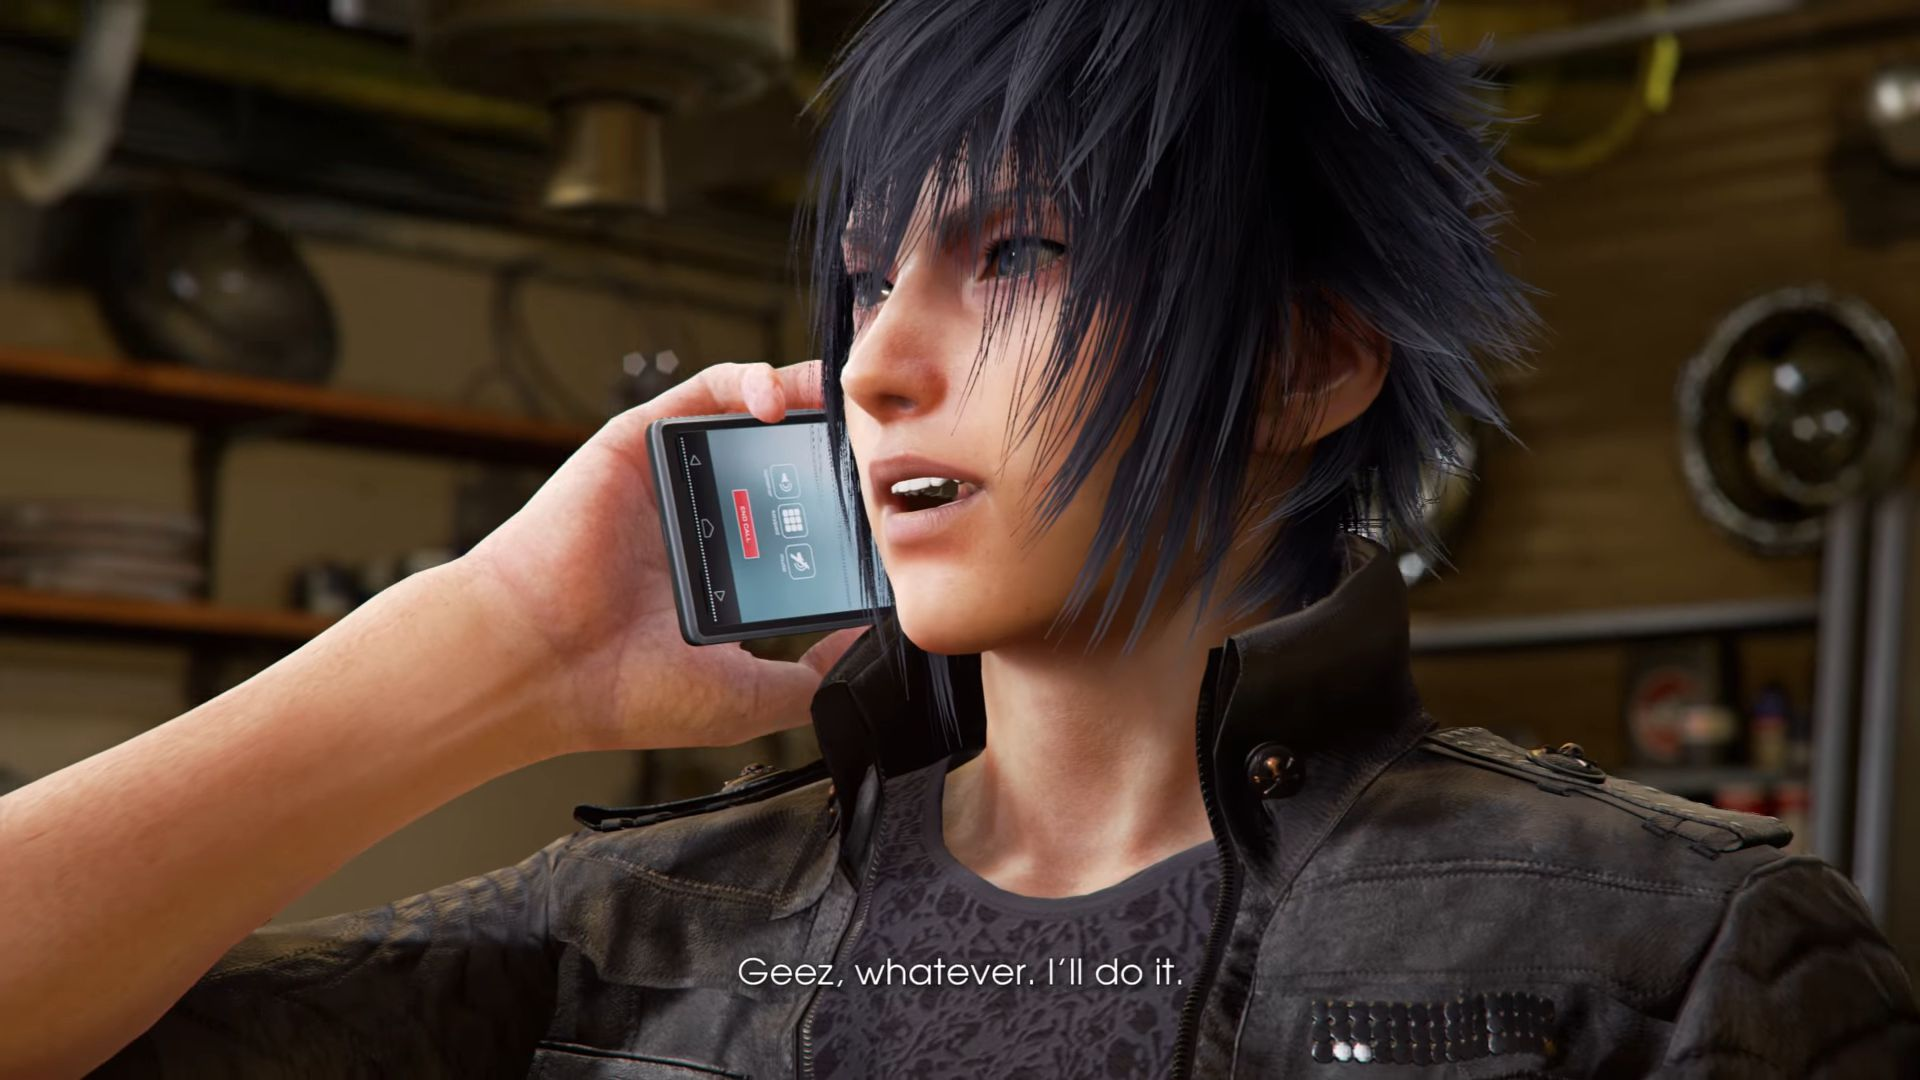 notcis, final fantasy xv